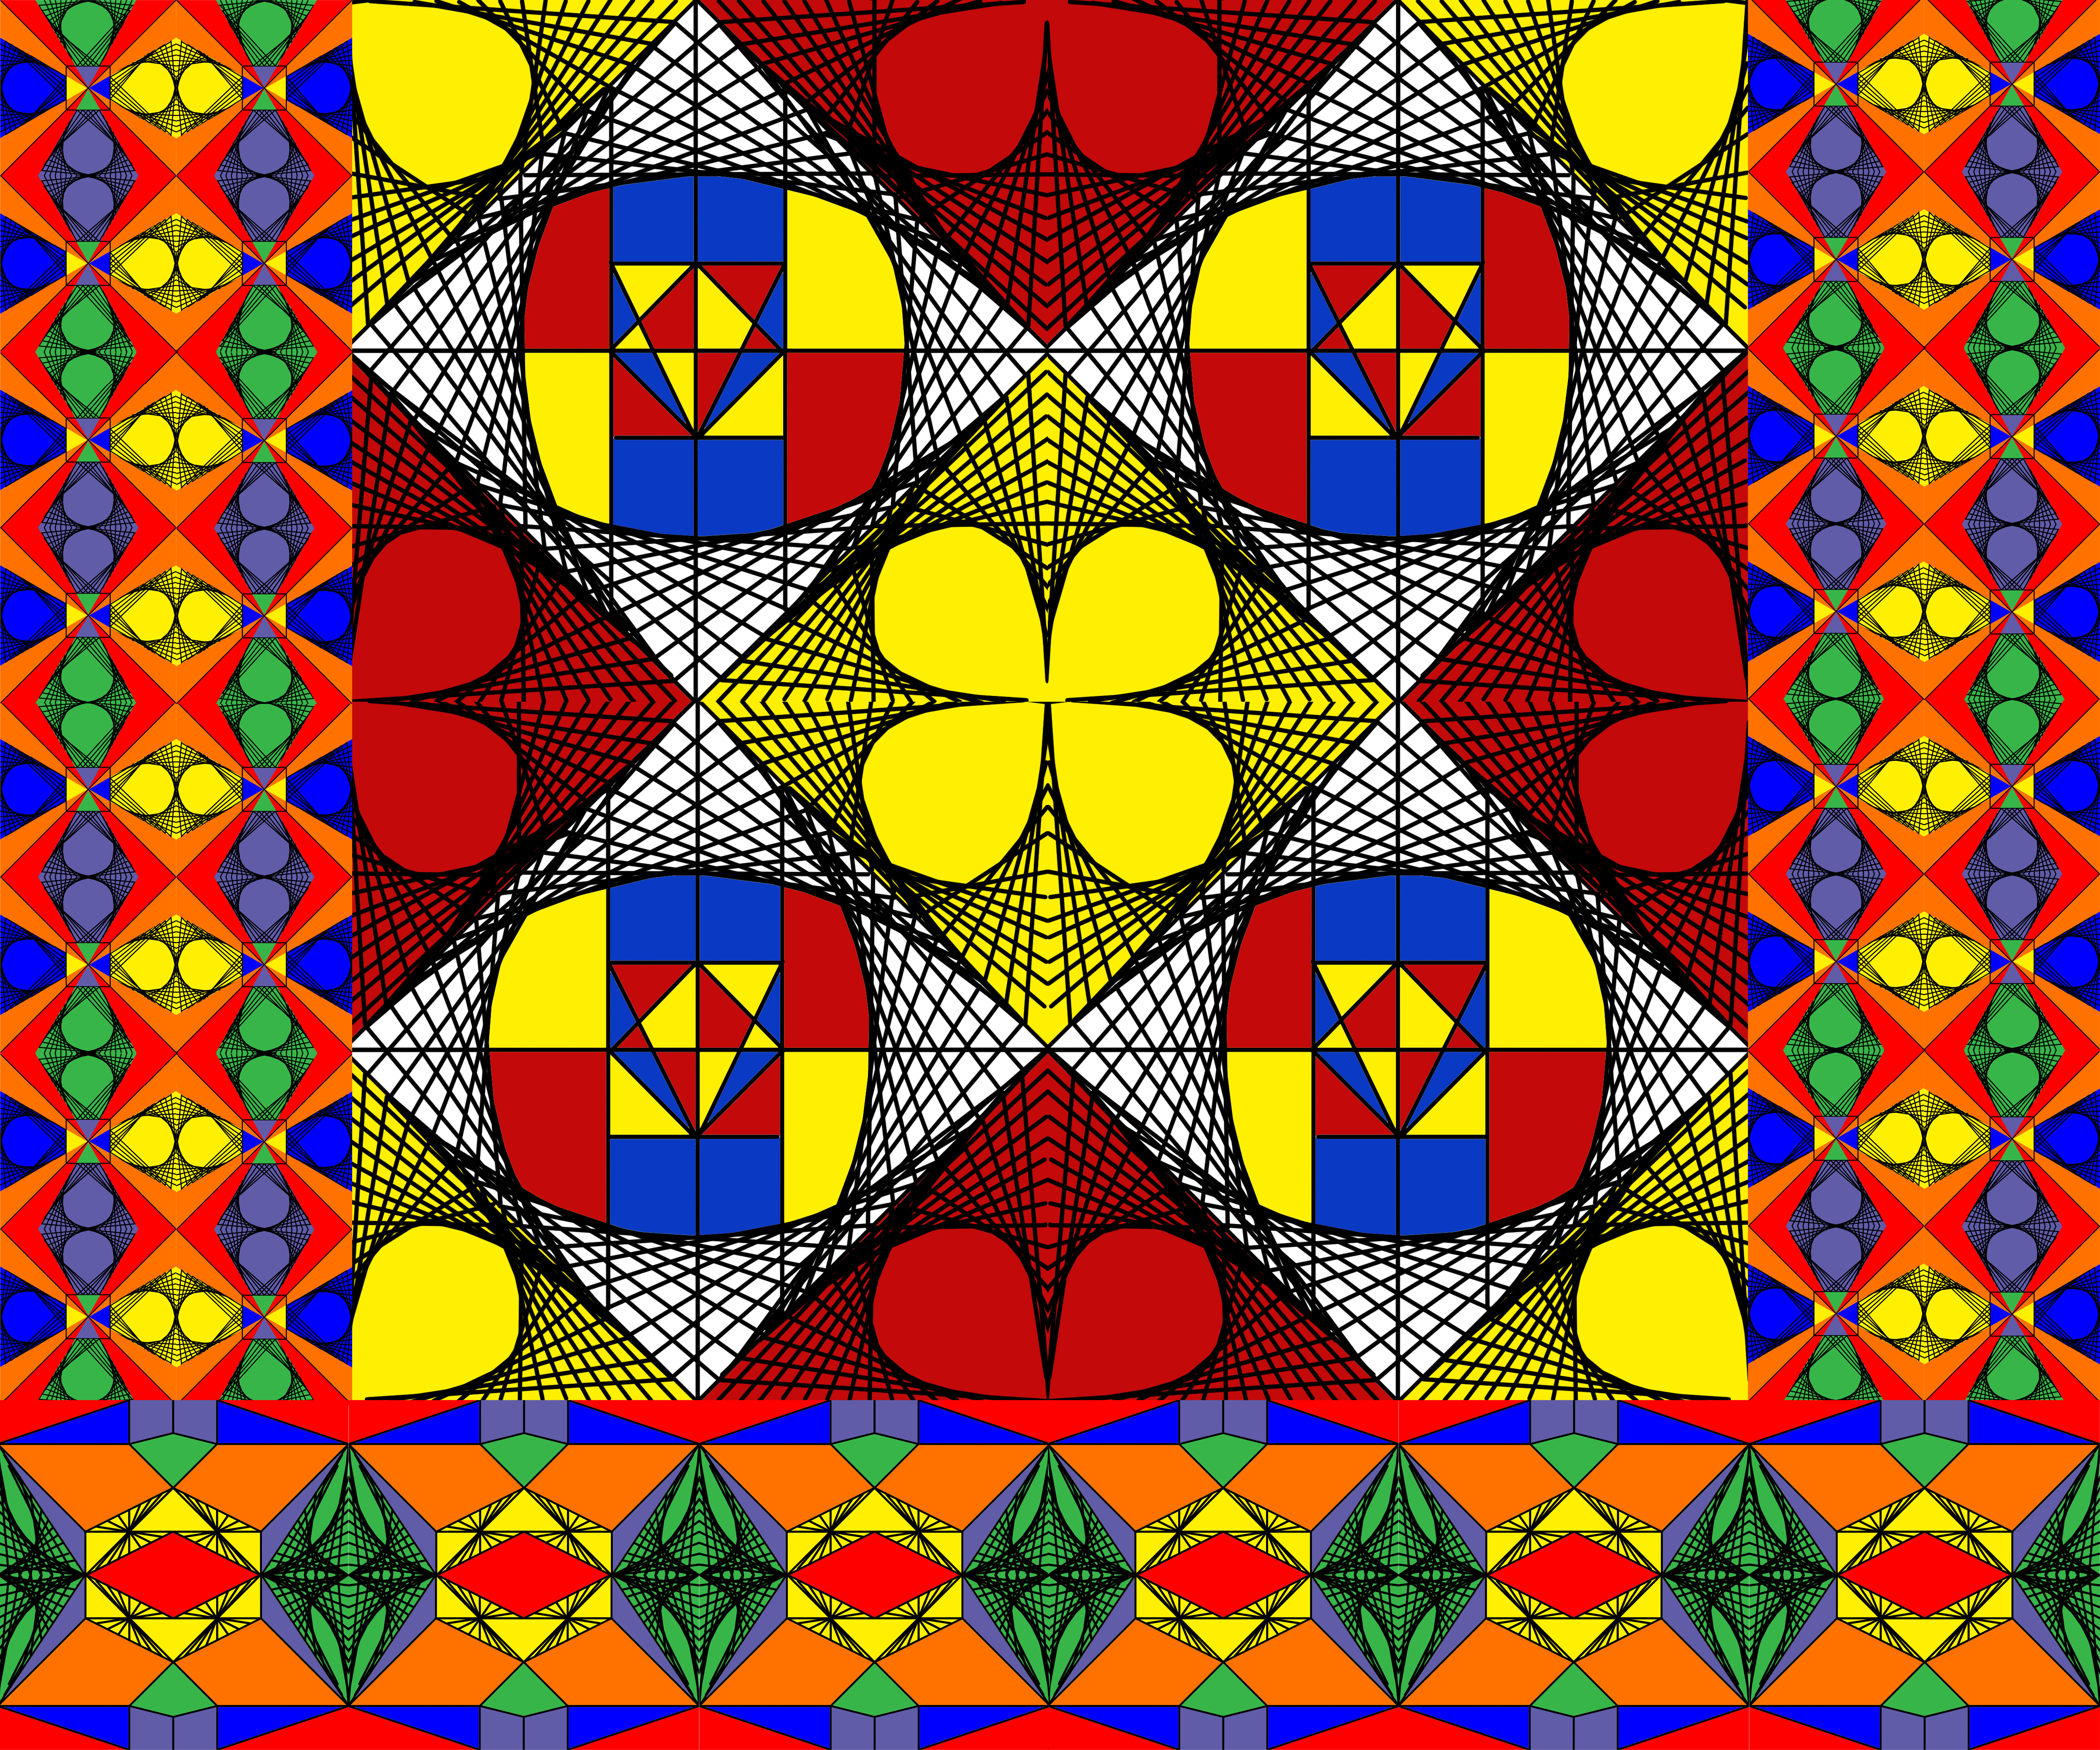 Kente Cloth Design | Solve Kente Cloth Design Jigsaw Puzzle Online With 56 Pieces